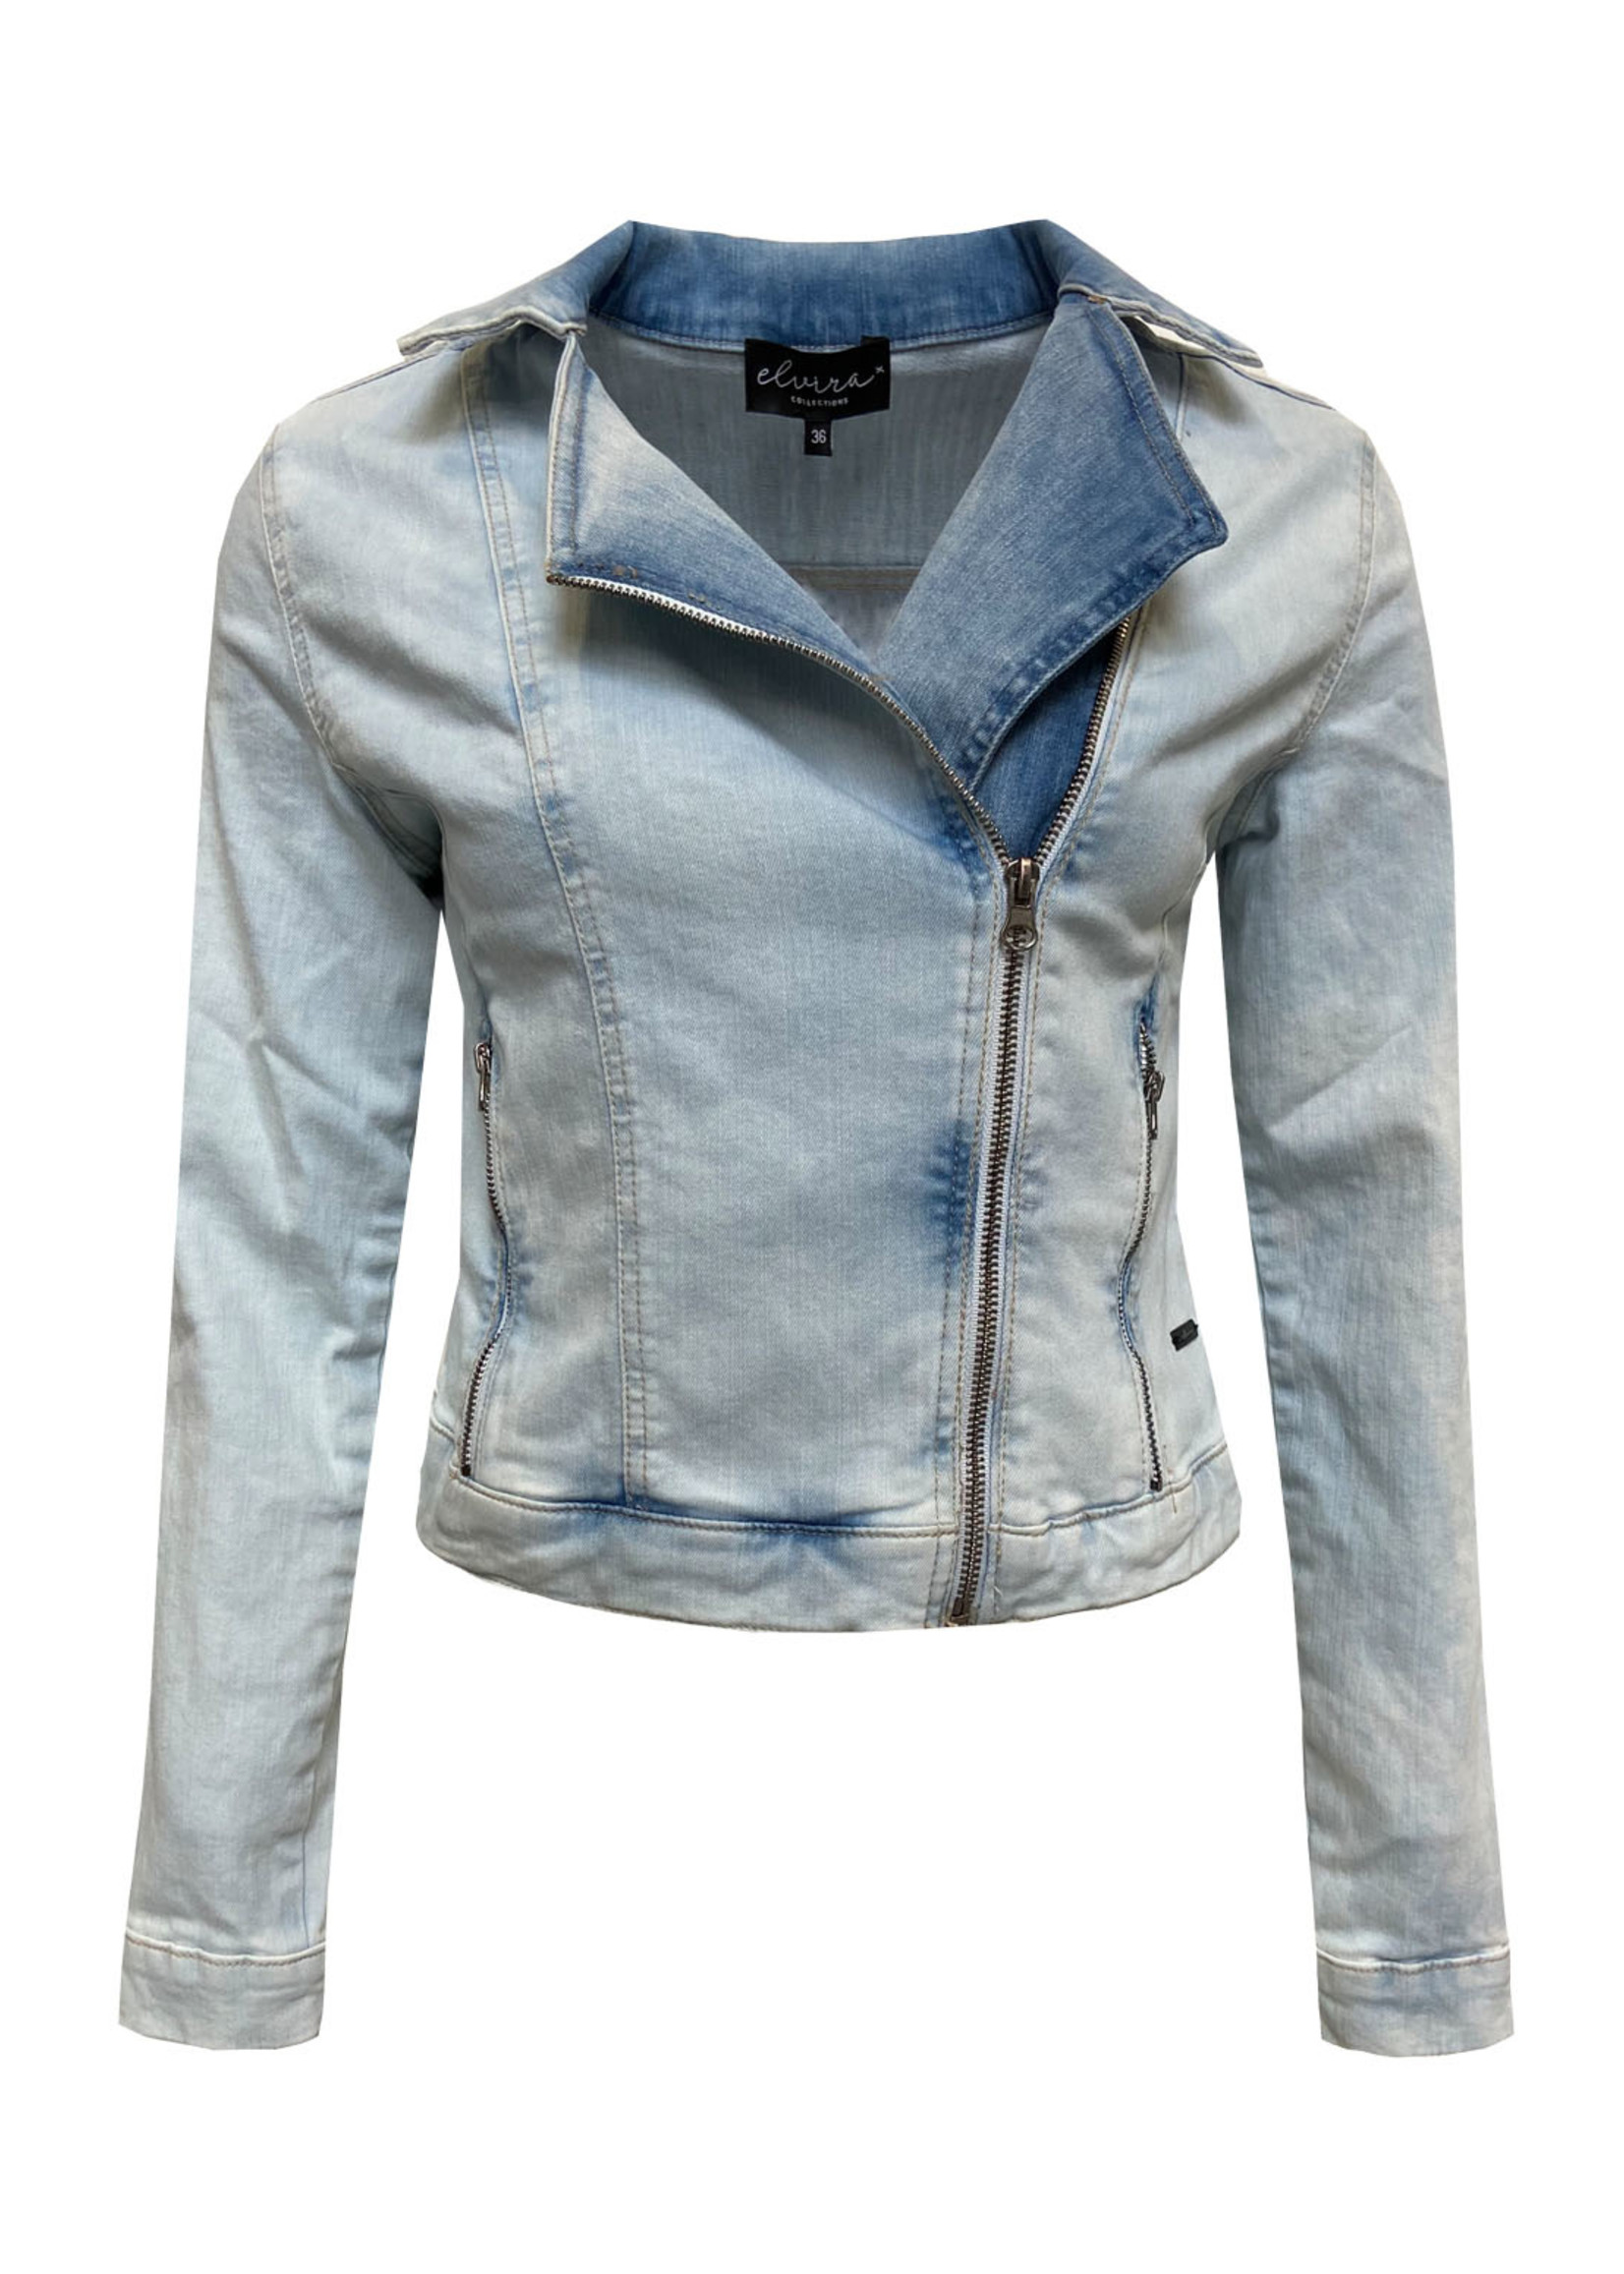 Elvira Collections Elvira Collections Indy Jacket